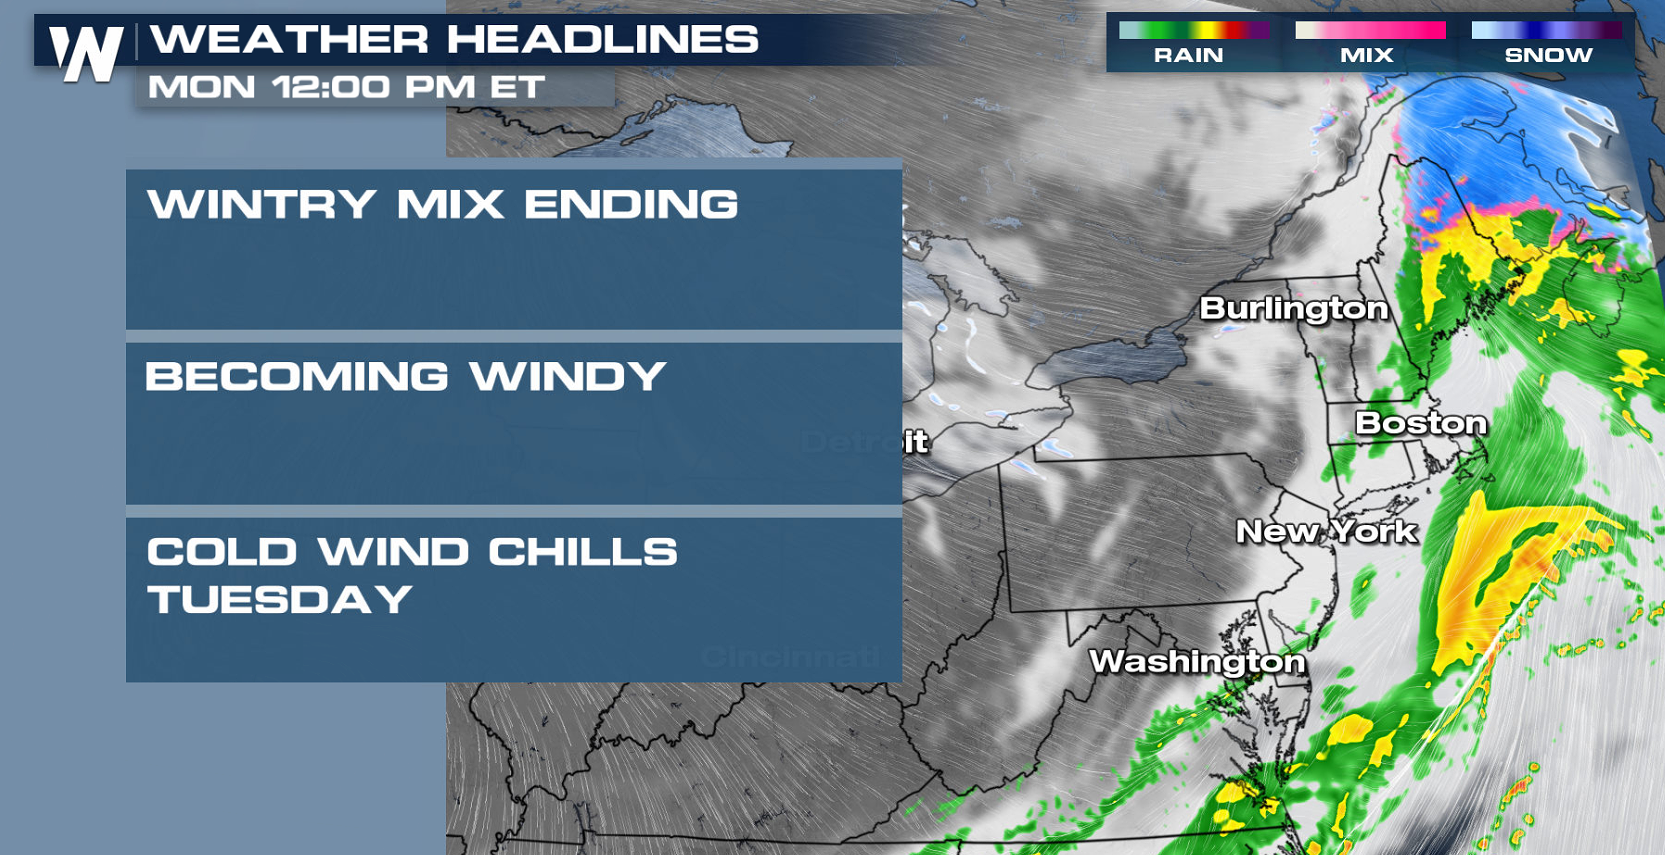 Windy and Cold for the Northeast